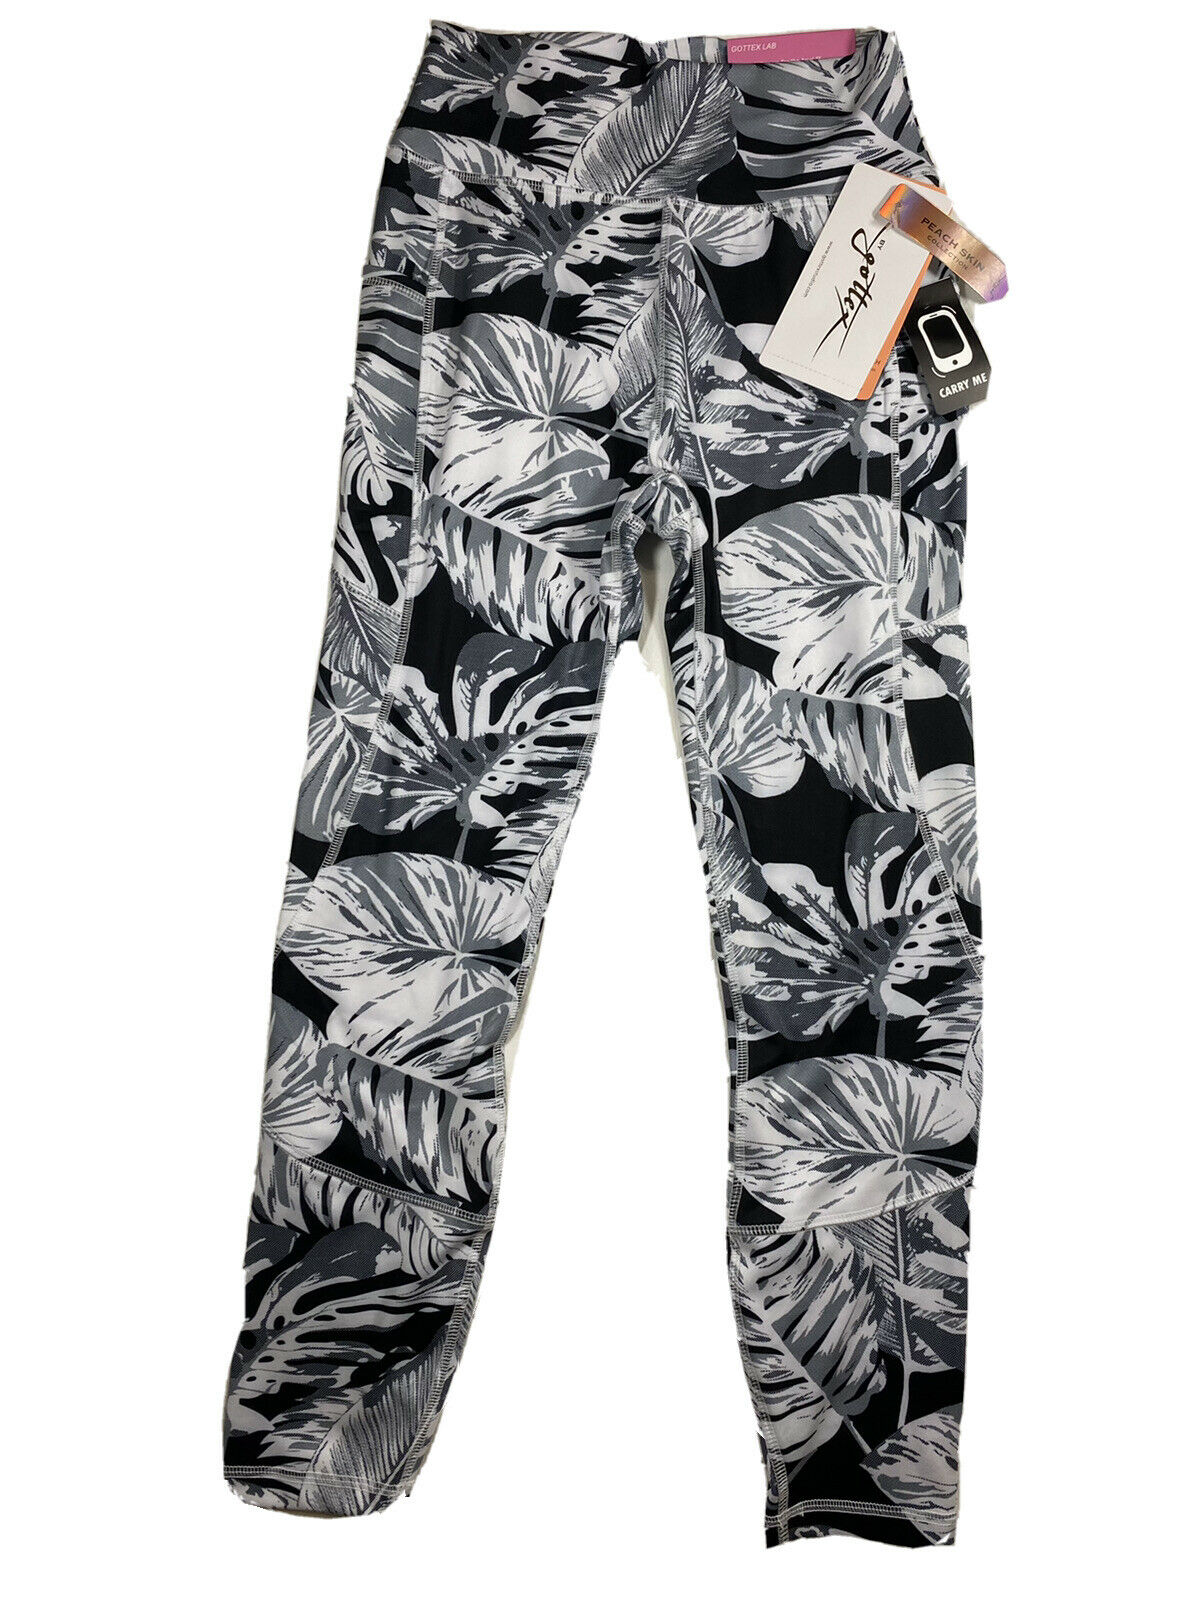 Gottex Womens Leggings Peach Collection Size Small Color Leaf MSRP